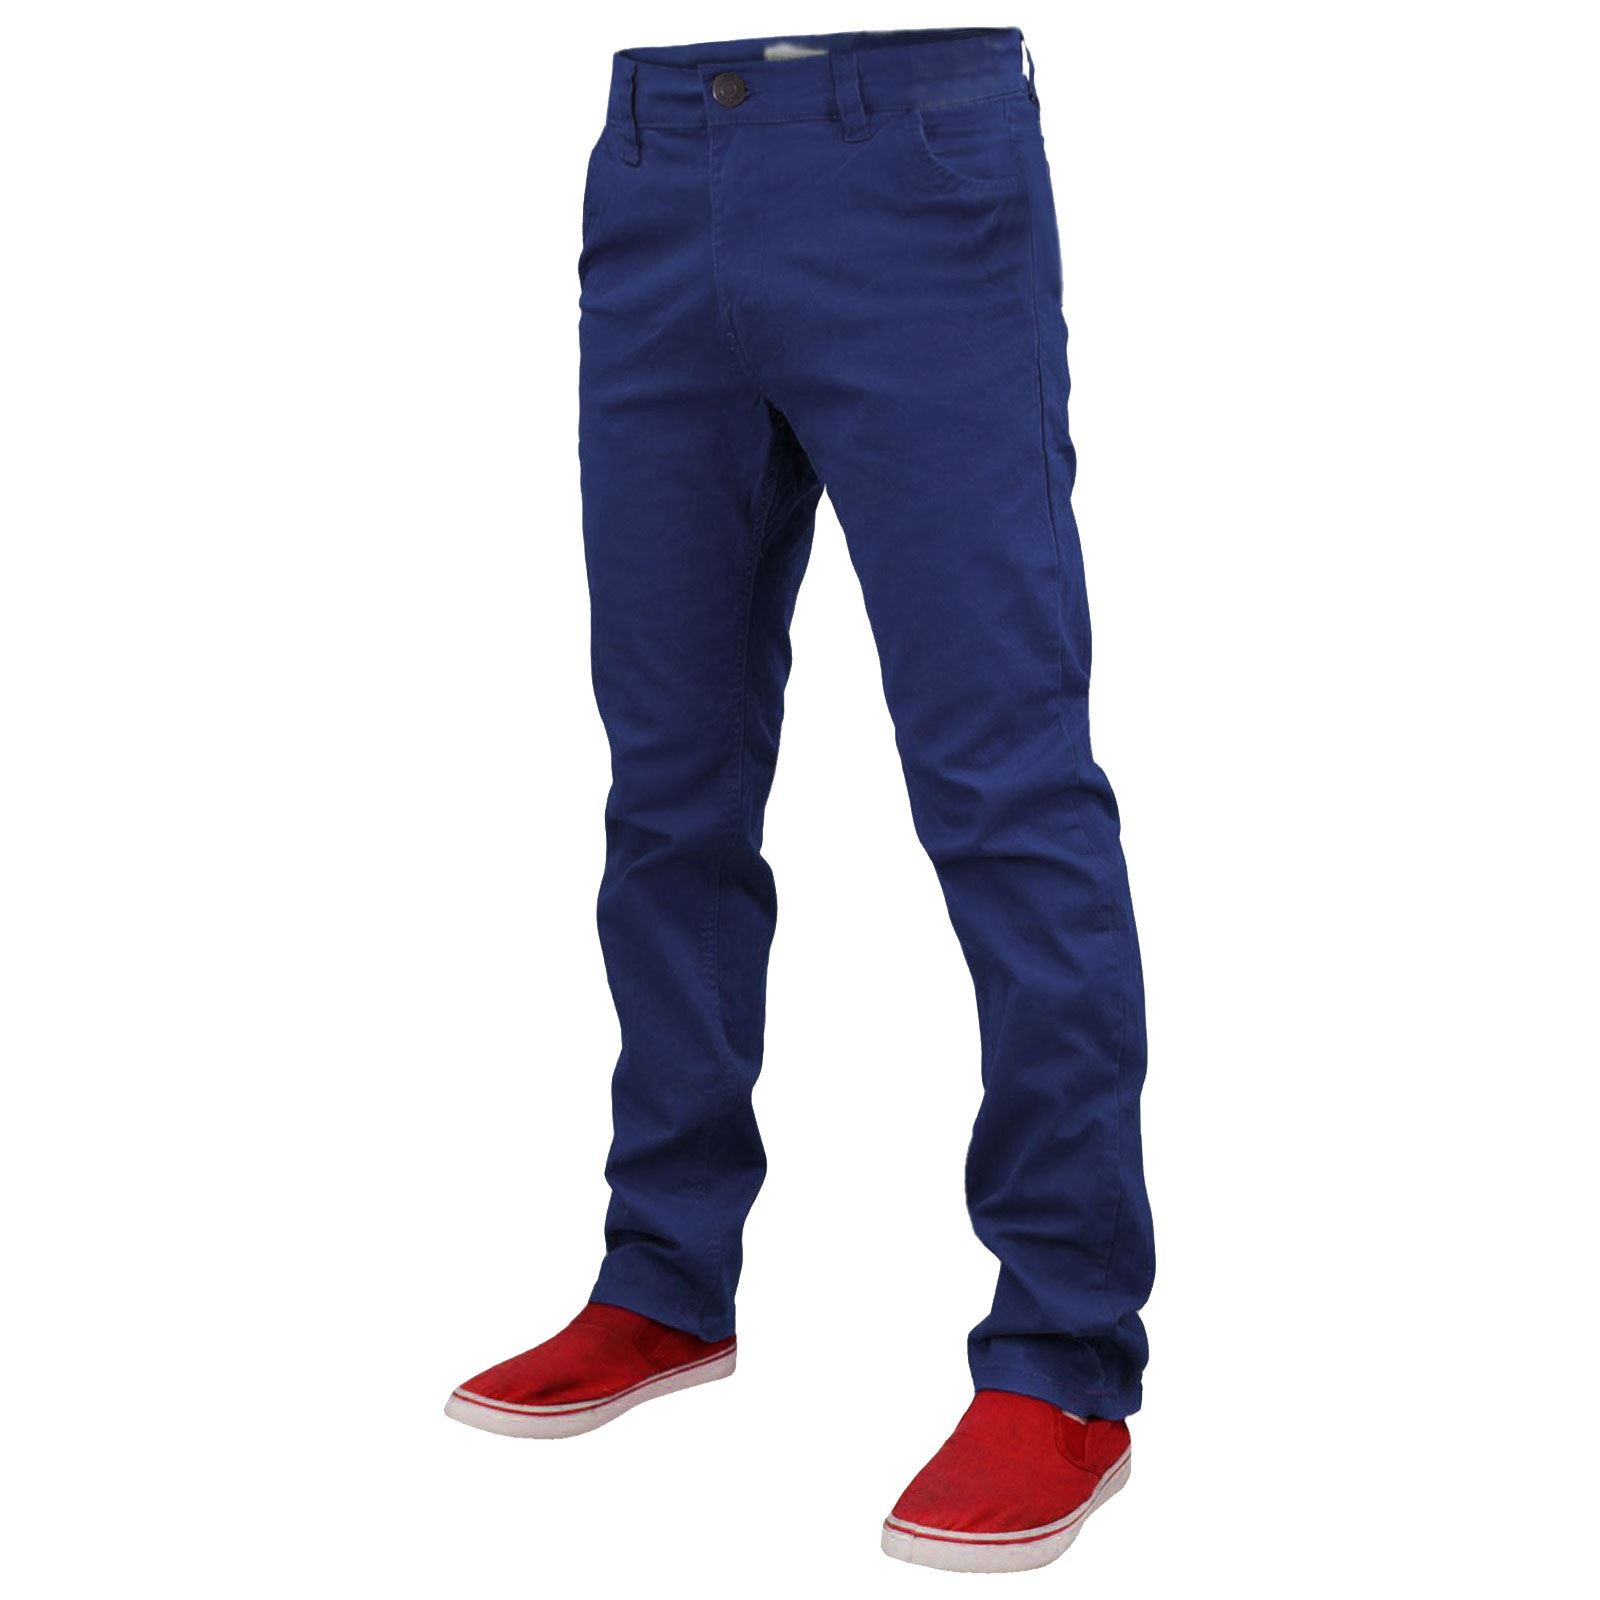 kids boys chino stretch jeans teens trousers skinny slim. Black Bedroom Furniture Sets. Home Design Ideas